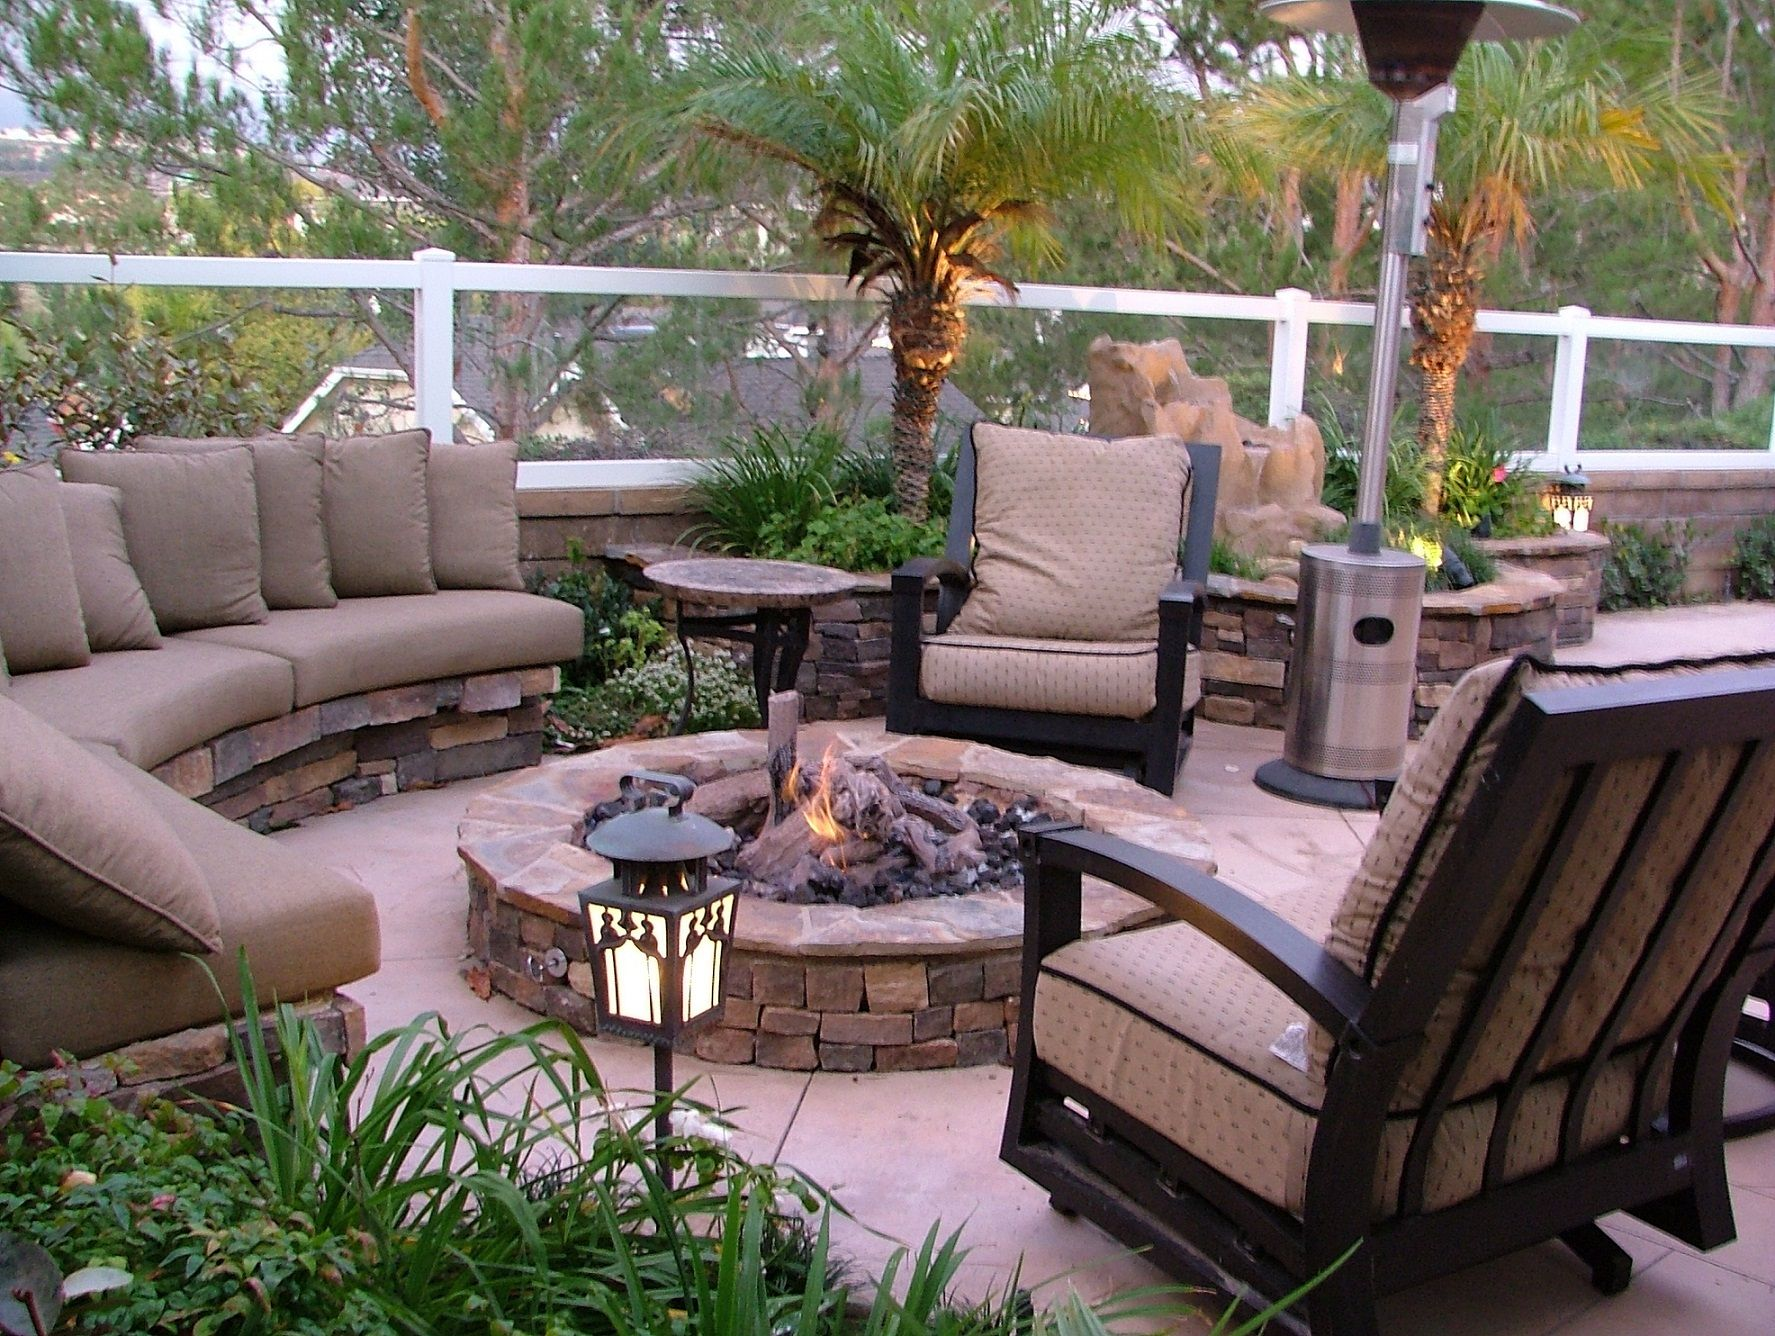 Patio ideas on a budget - Garden Design Ideas Budget Small Garden Ideas On A Budget Small